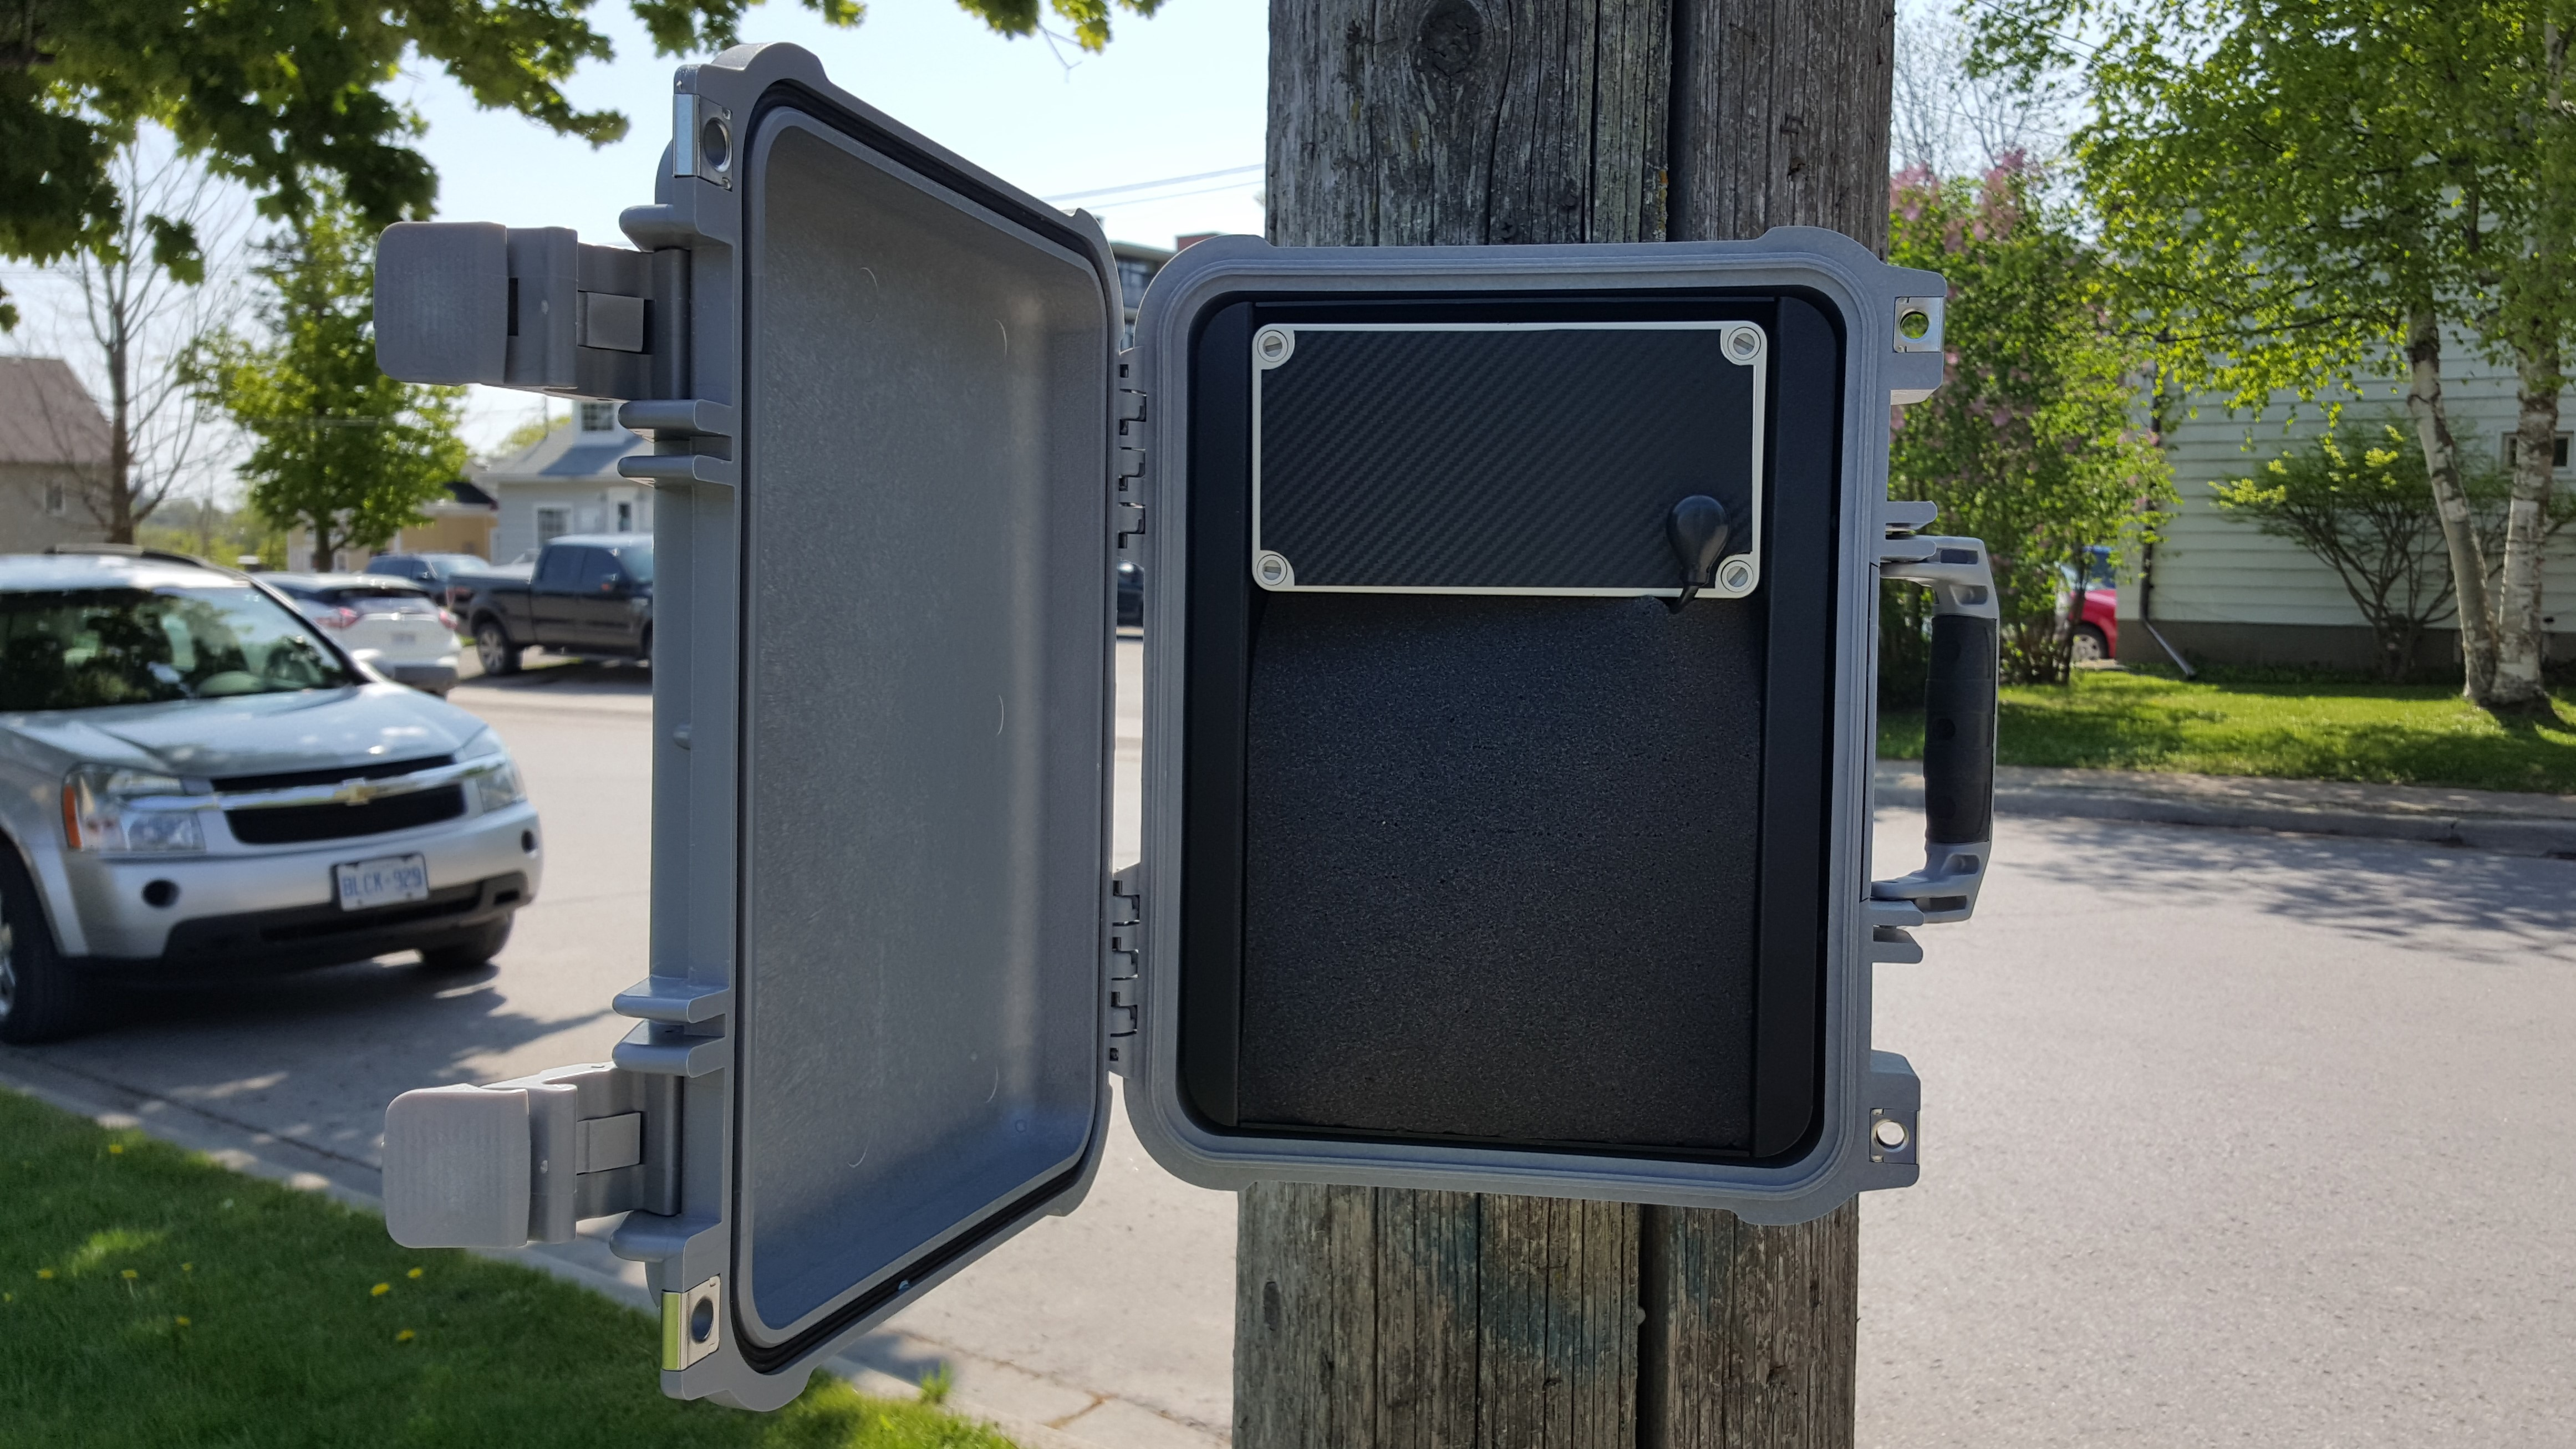 Black CAT radar unit affixed to a utility pole, detecting vehicles on community road.